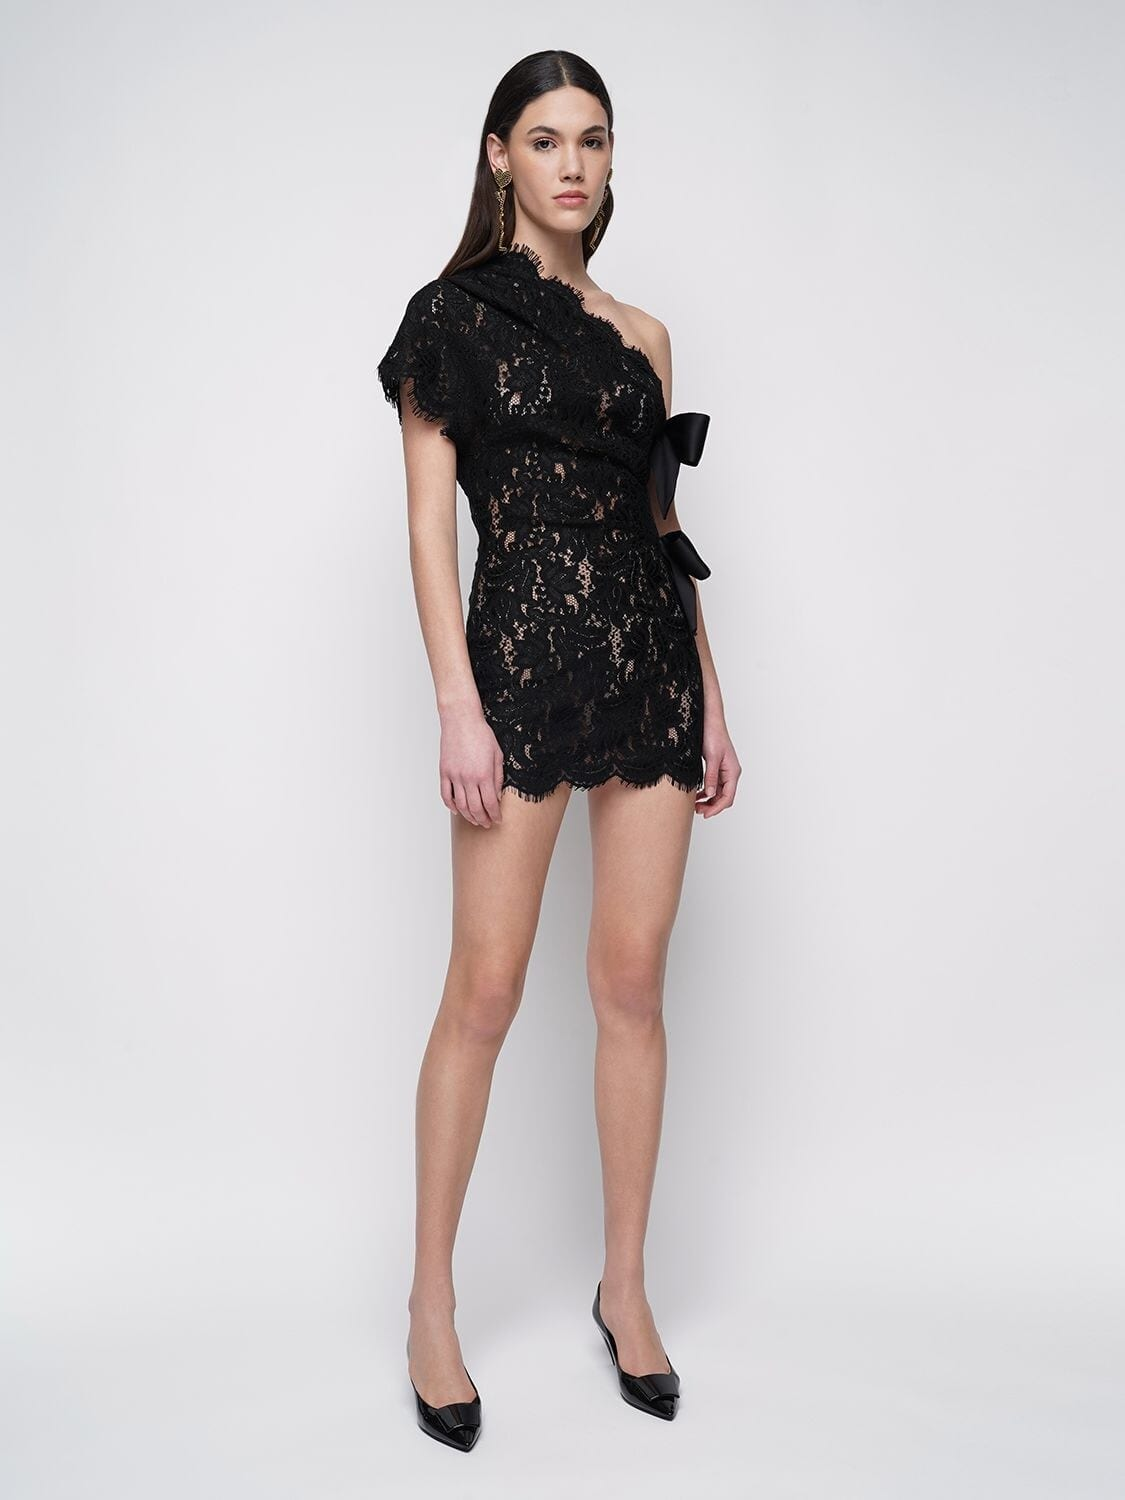 SAINT LAURENT Sheer Lace One-shoulder Mini Dress